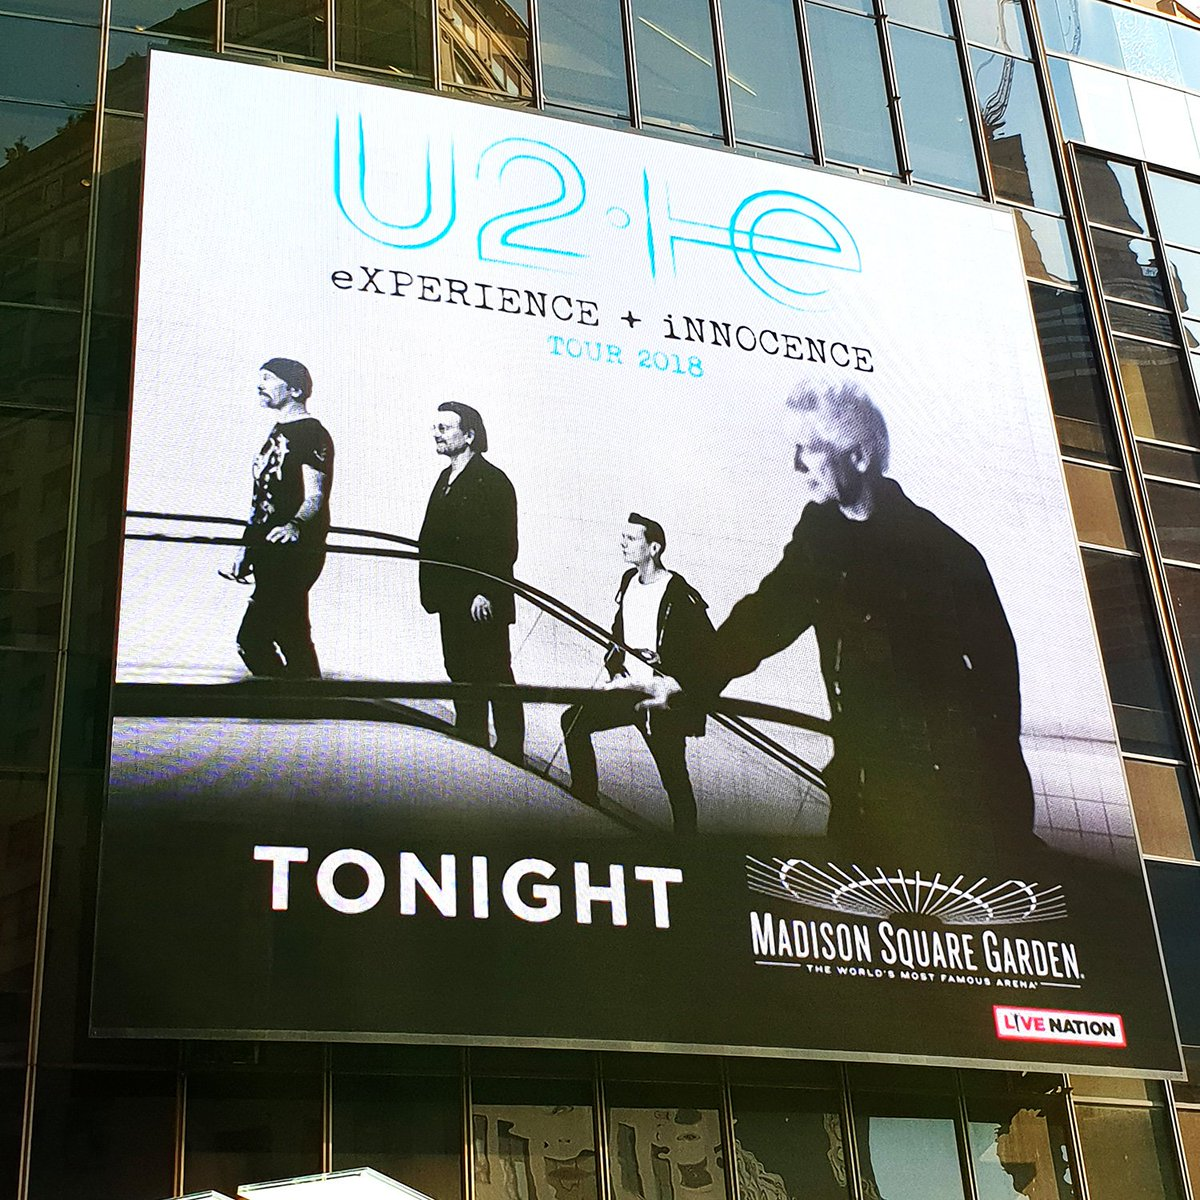 share and follow the feed here httpswwwu2comtourdateid45561535 pictwittercomyhalc8mhlt - U2 At Madison Square Garden